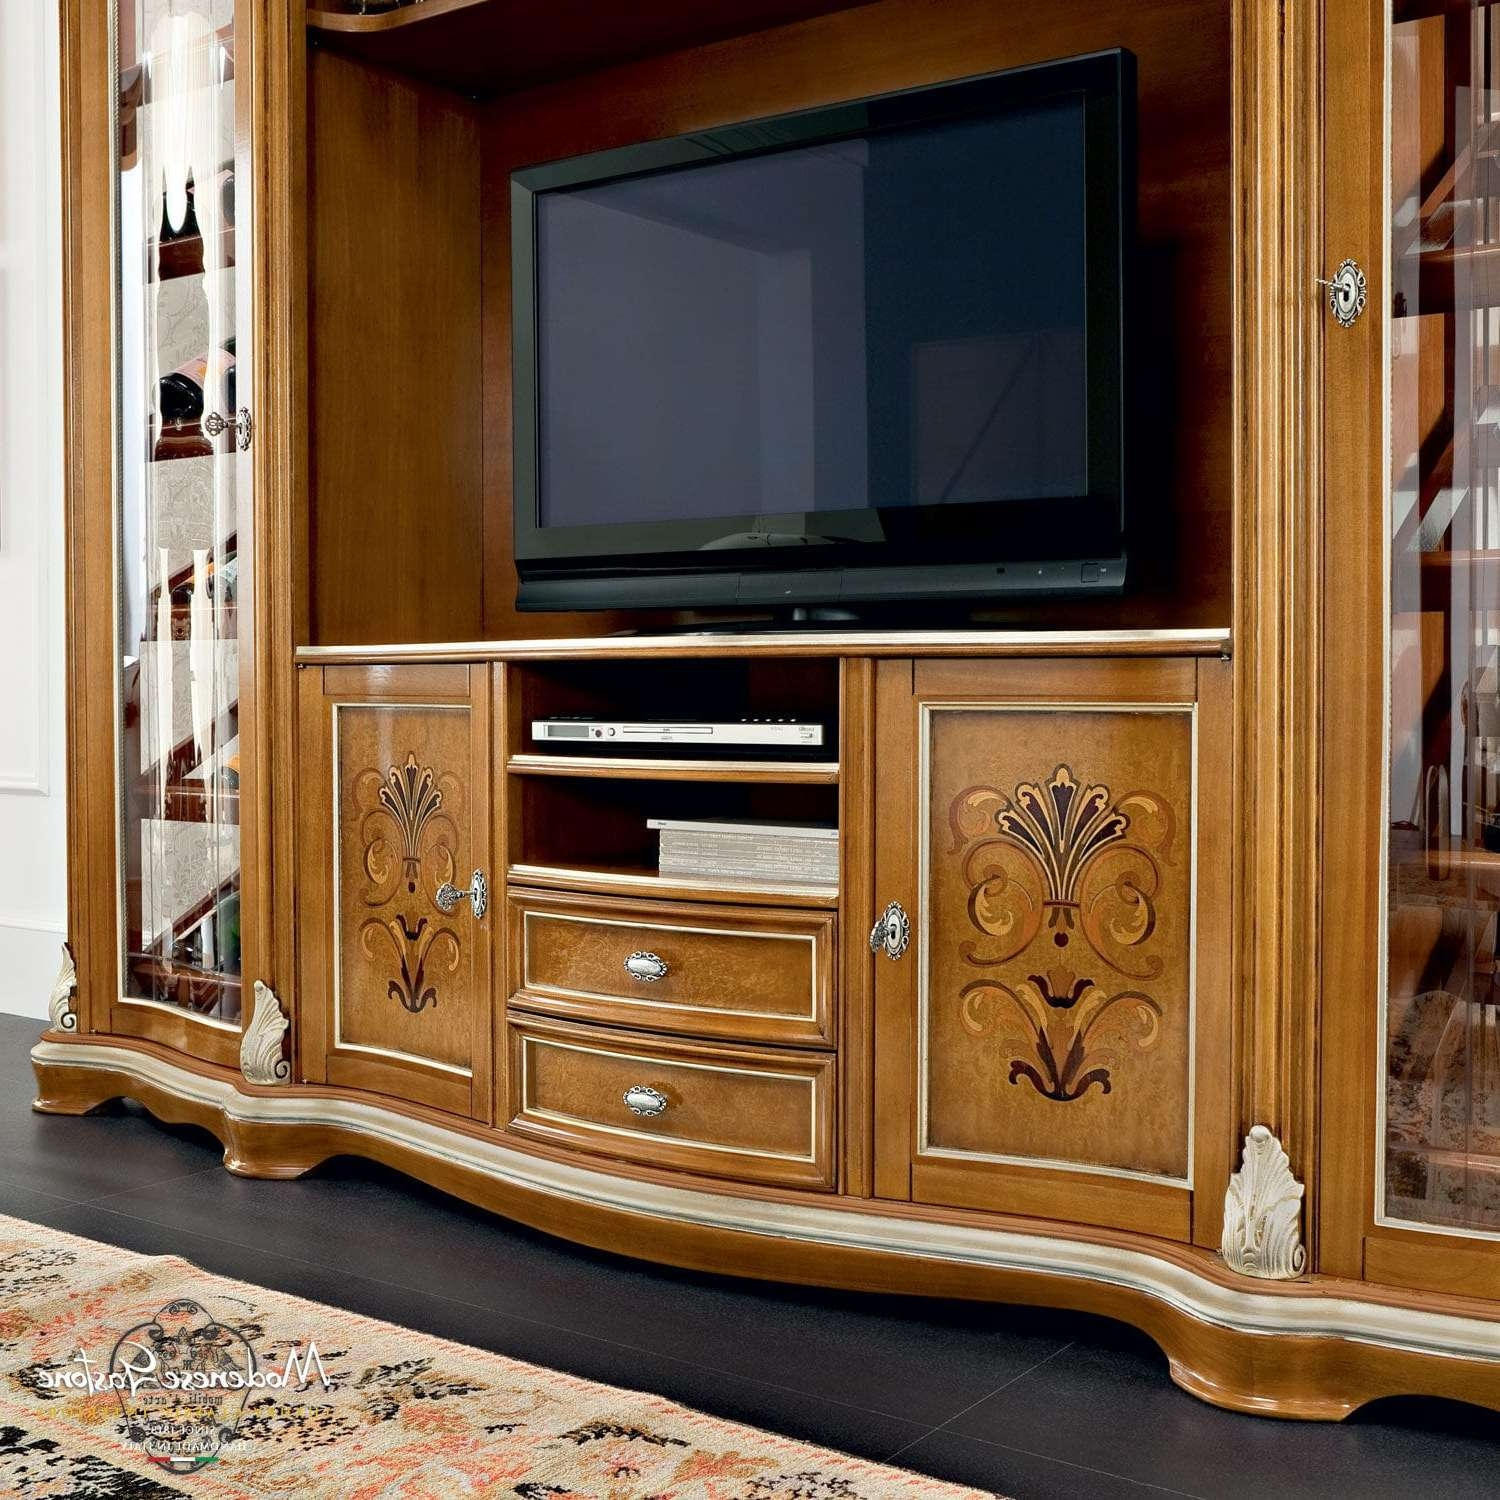 Classic Tv Cabinet / Solid Wood – Bella Vita – Modenese Gastone With Regard To Wooden Tv Cabinets (View 4 of 20)